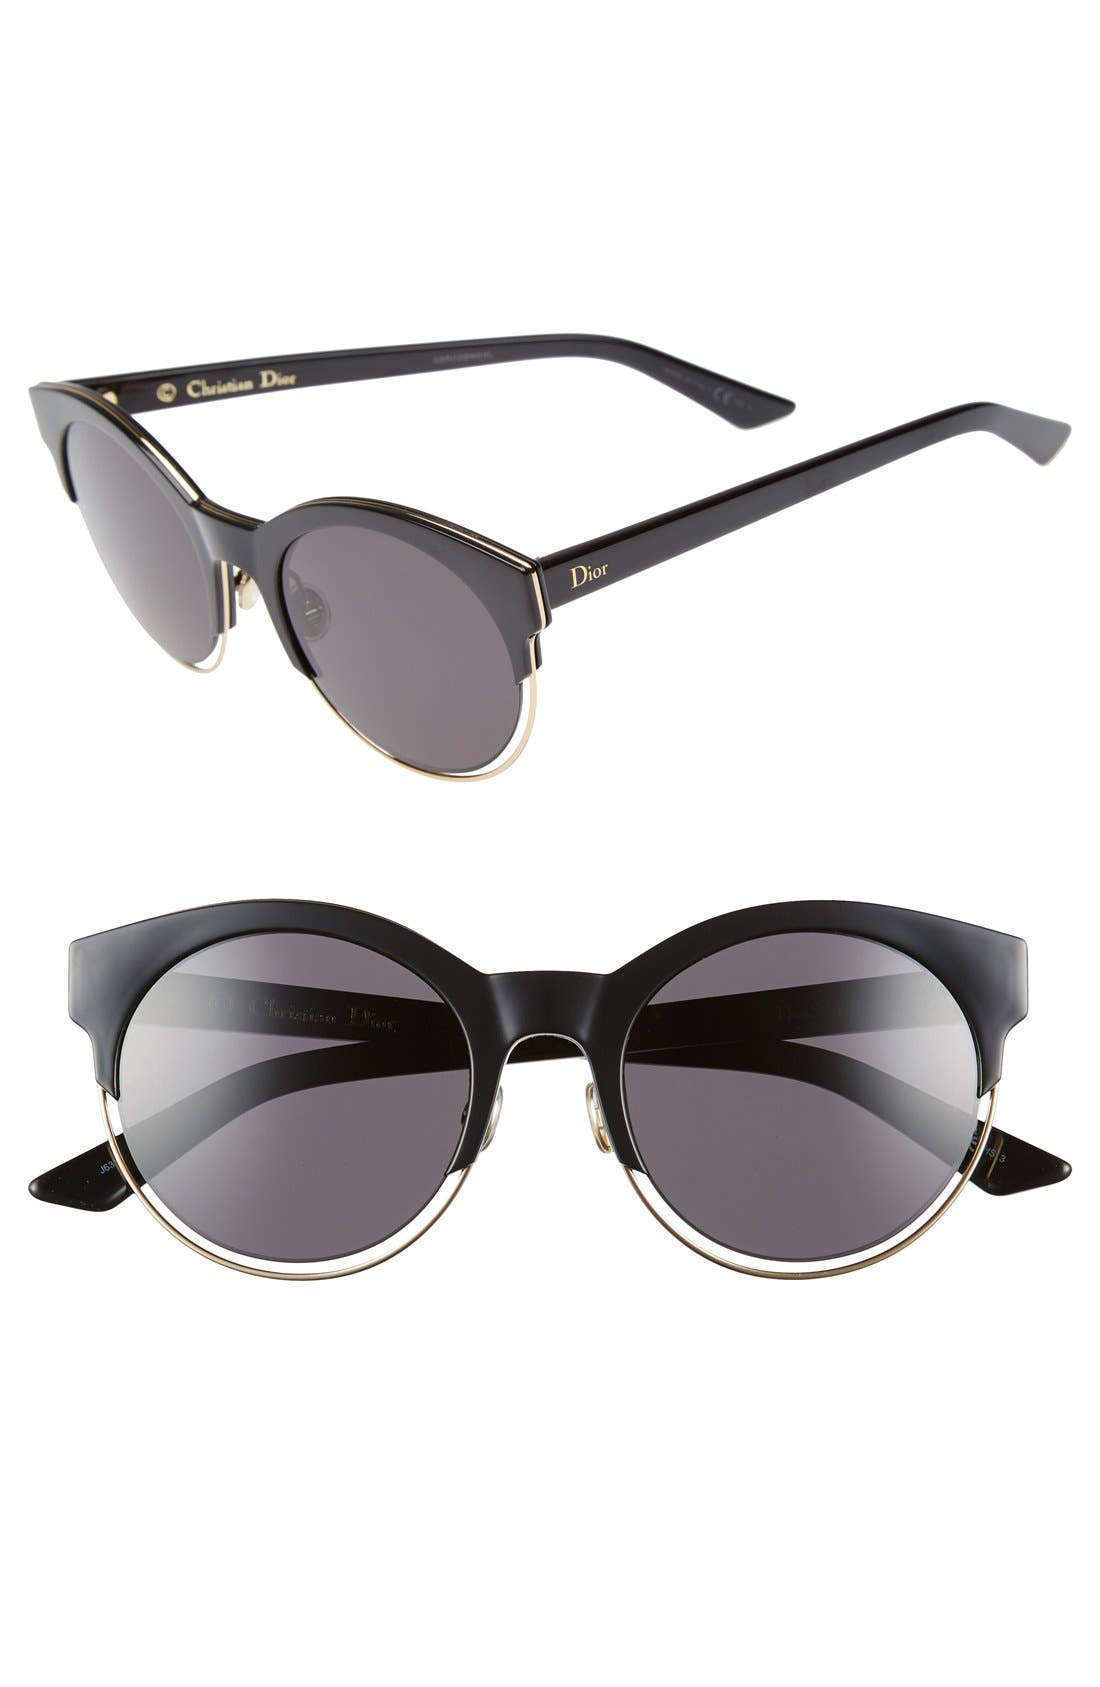 Siderall 1 53mm Round Sunglasses,                         Main,                         color,